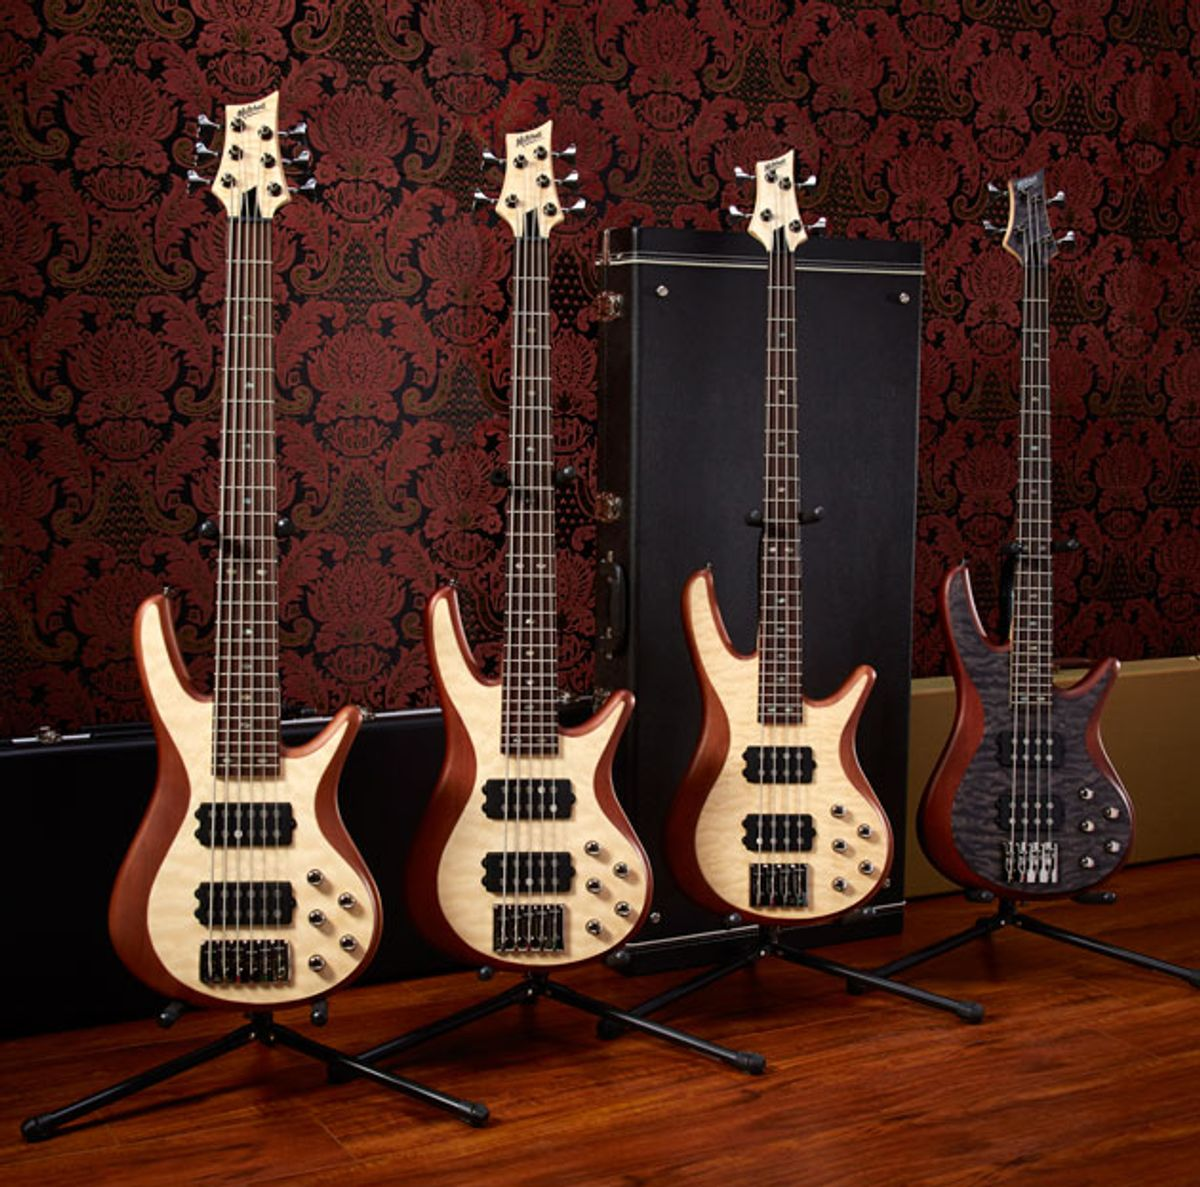 Mitchell Unveils the FB700 Bass